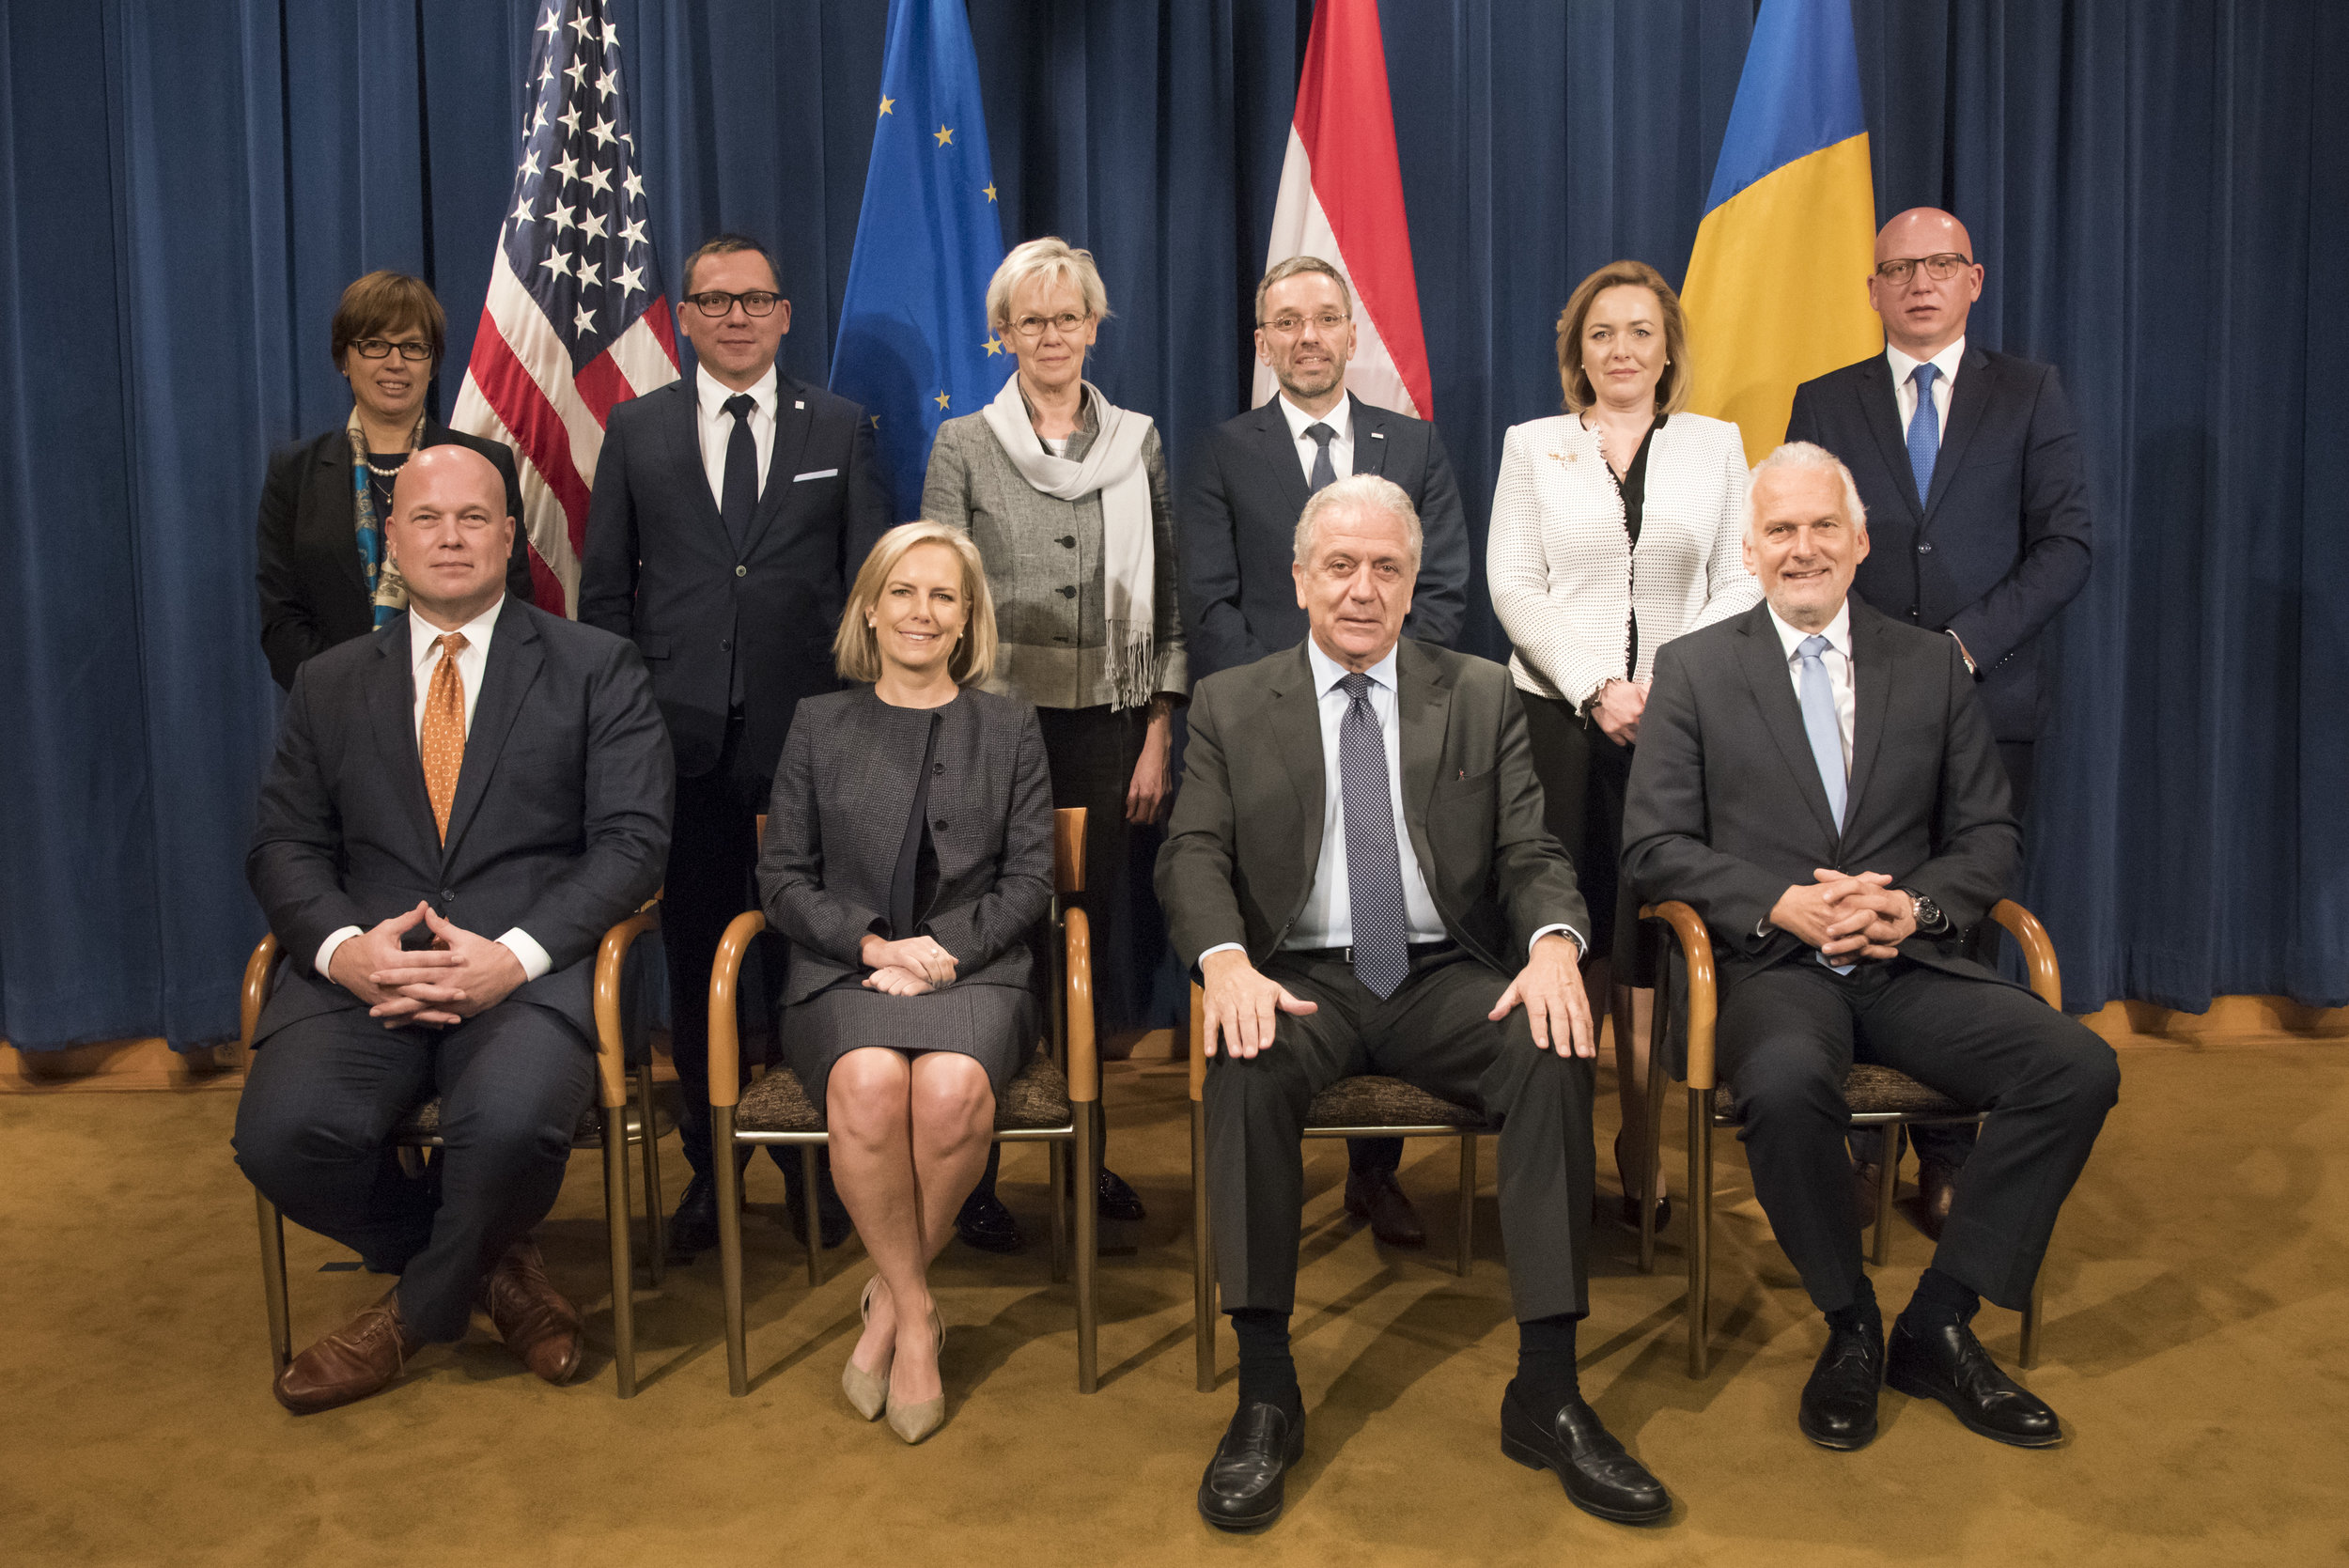 """Principals of the """"EU-U.S. Justice and Home Affairs Ministerial Meeting"""" pose for a group photo"""